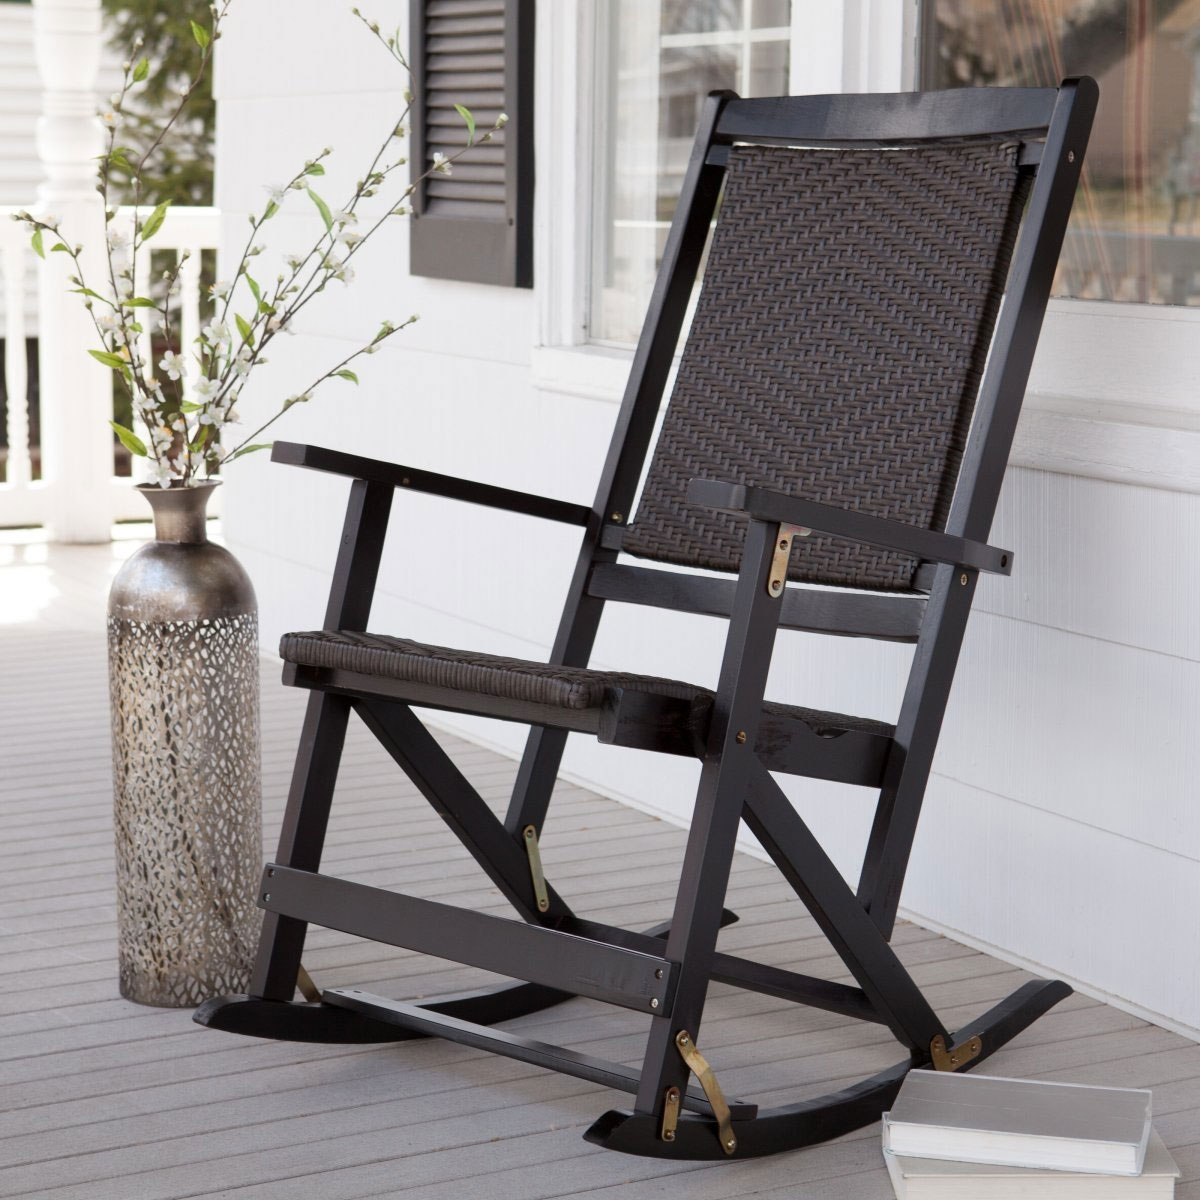 Outdoor Metal Rocking Chair Modern Chairs Quality Interior Lawn Regarding Outdoor Patio Metal Rocking Chairs (#11 of 15)